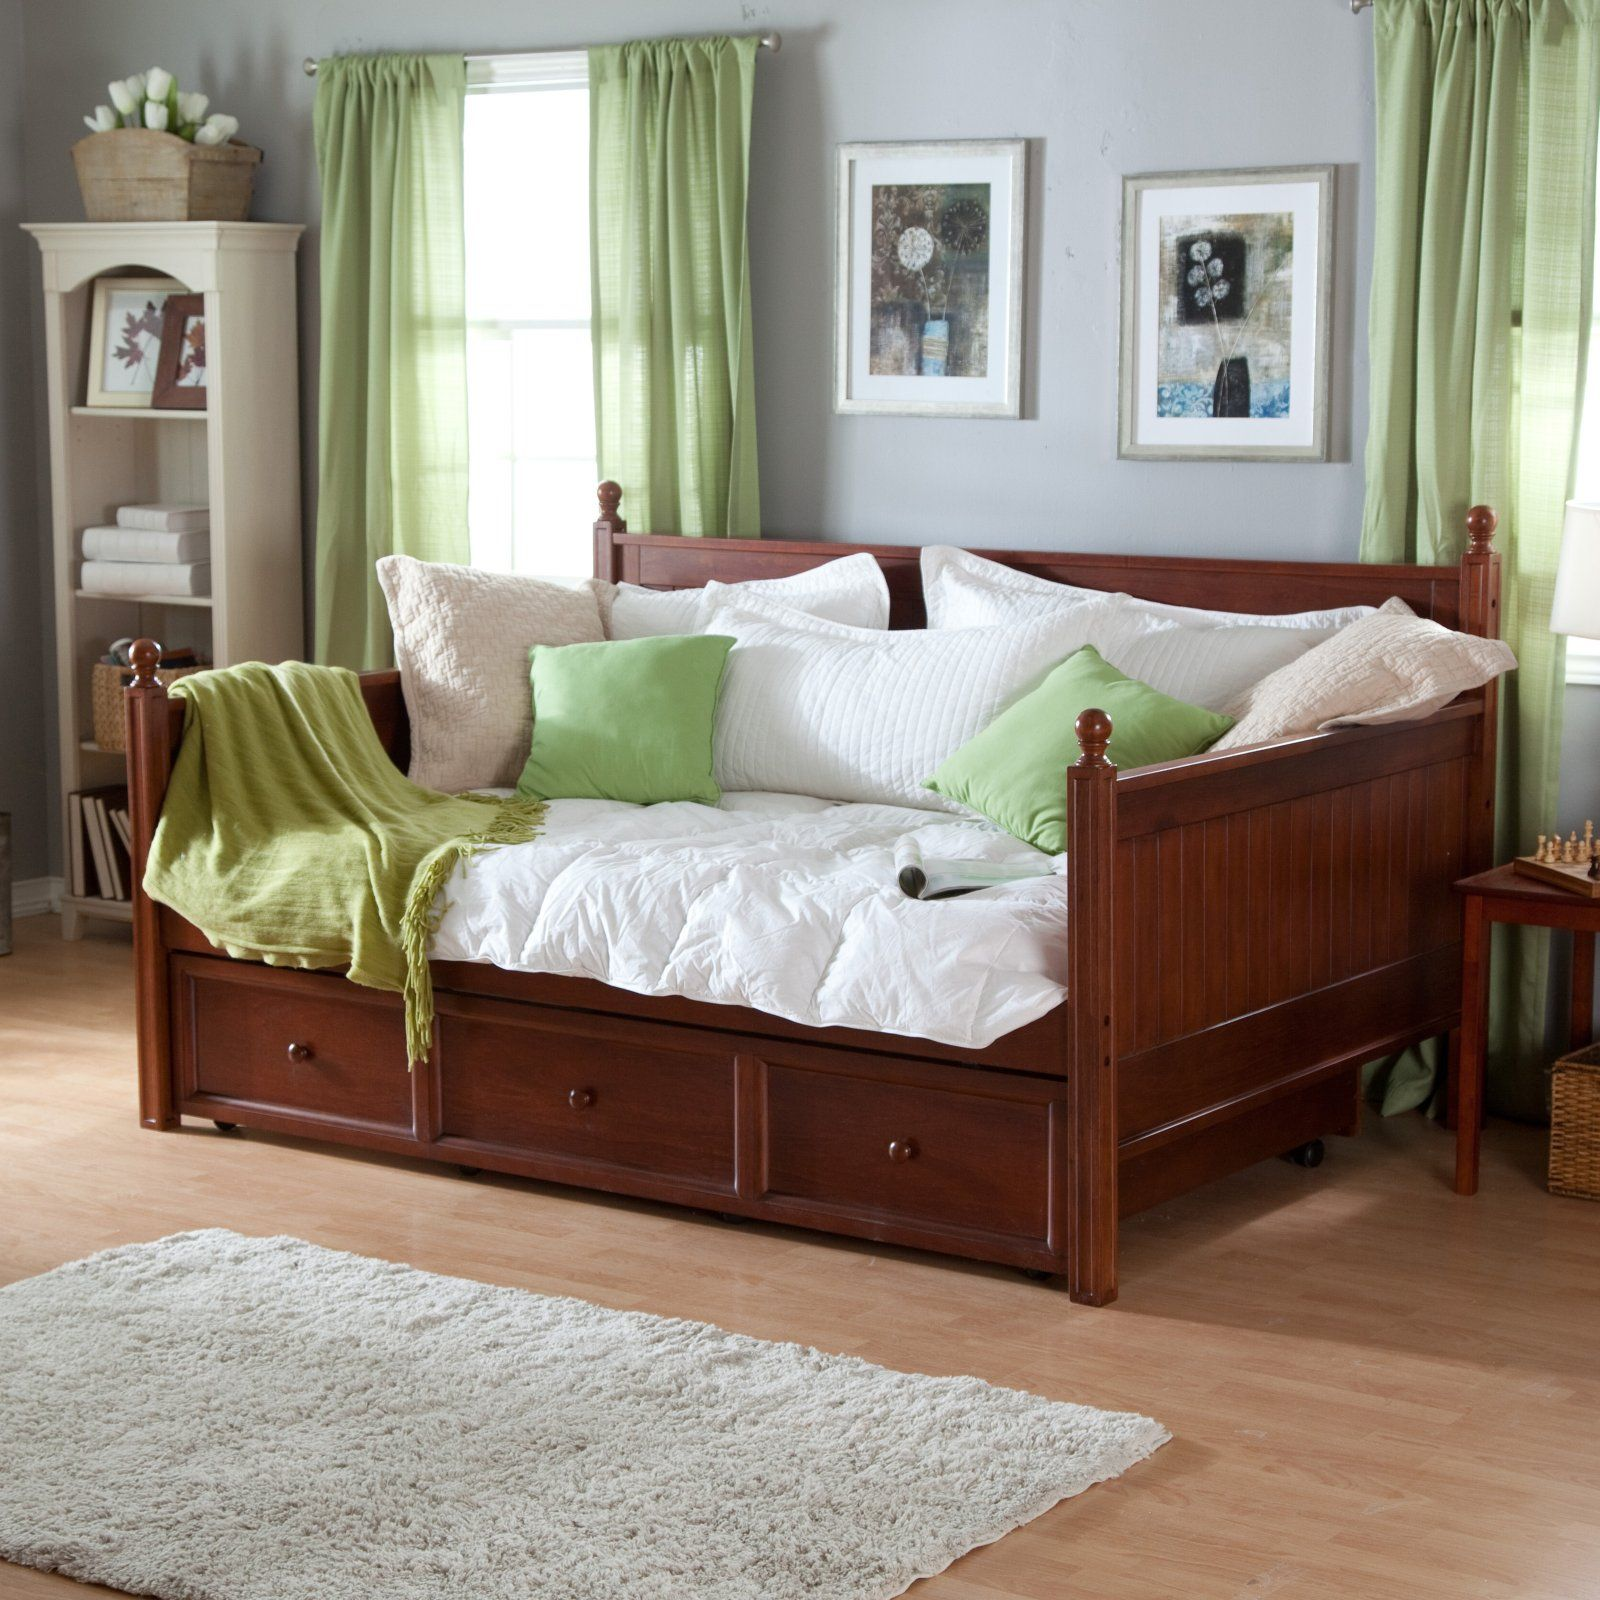 849 99 Full Size Daybed With Optional Trundle Casey